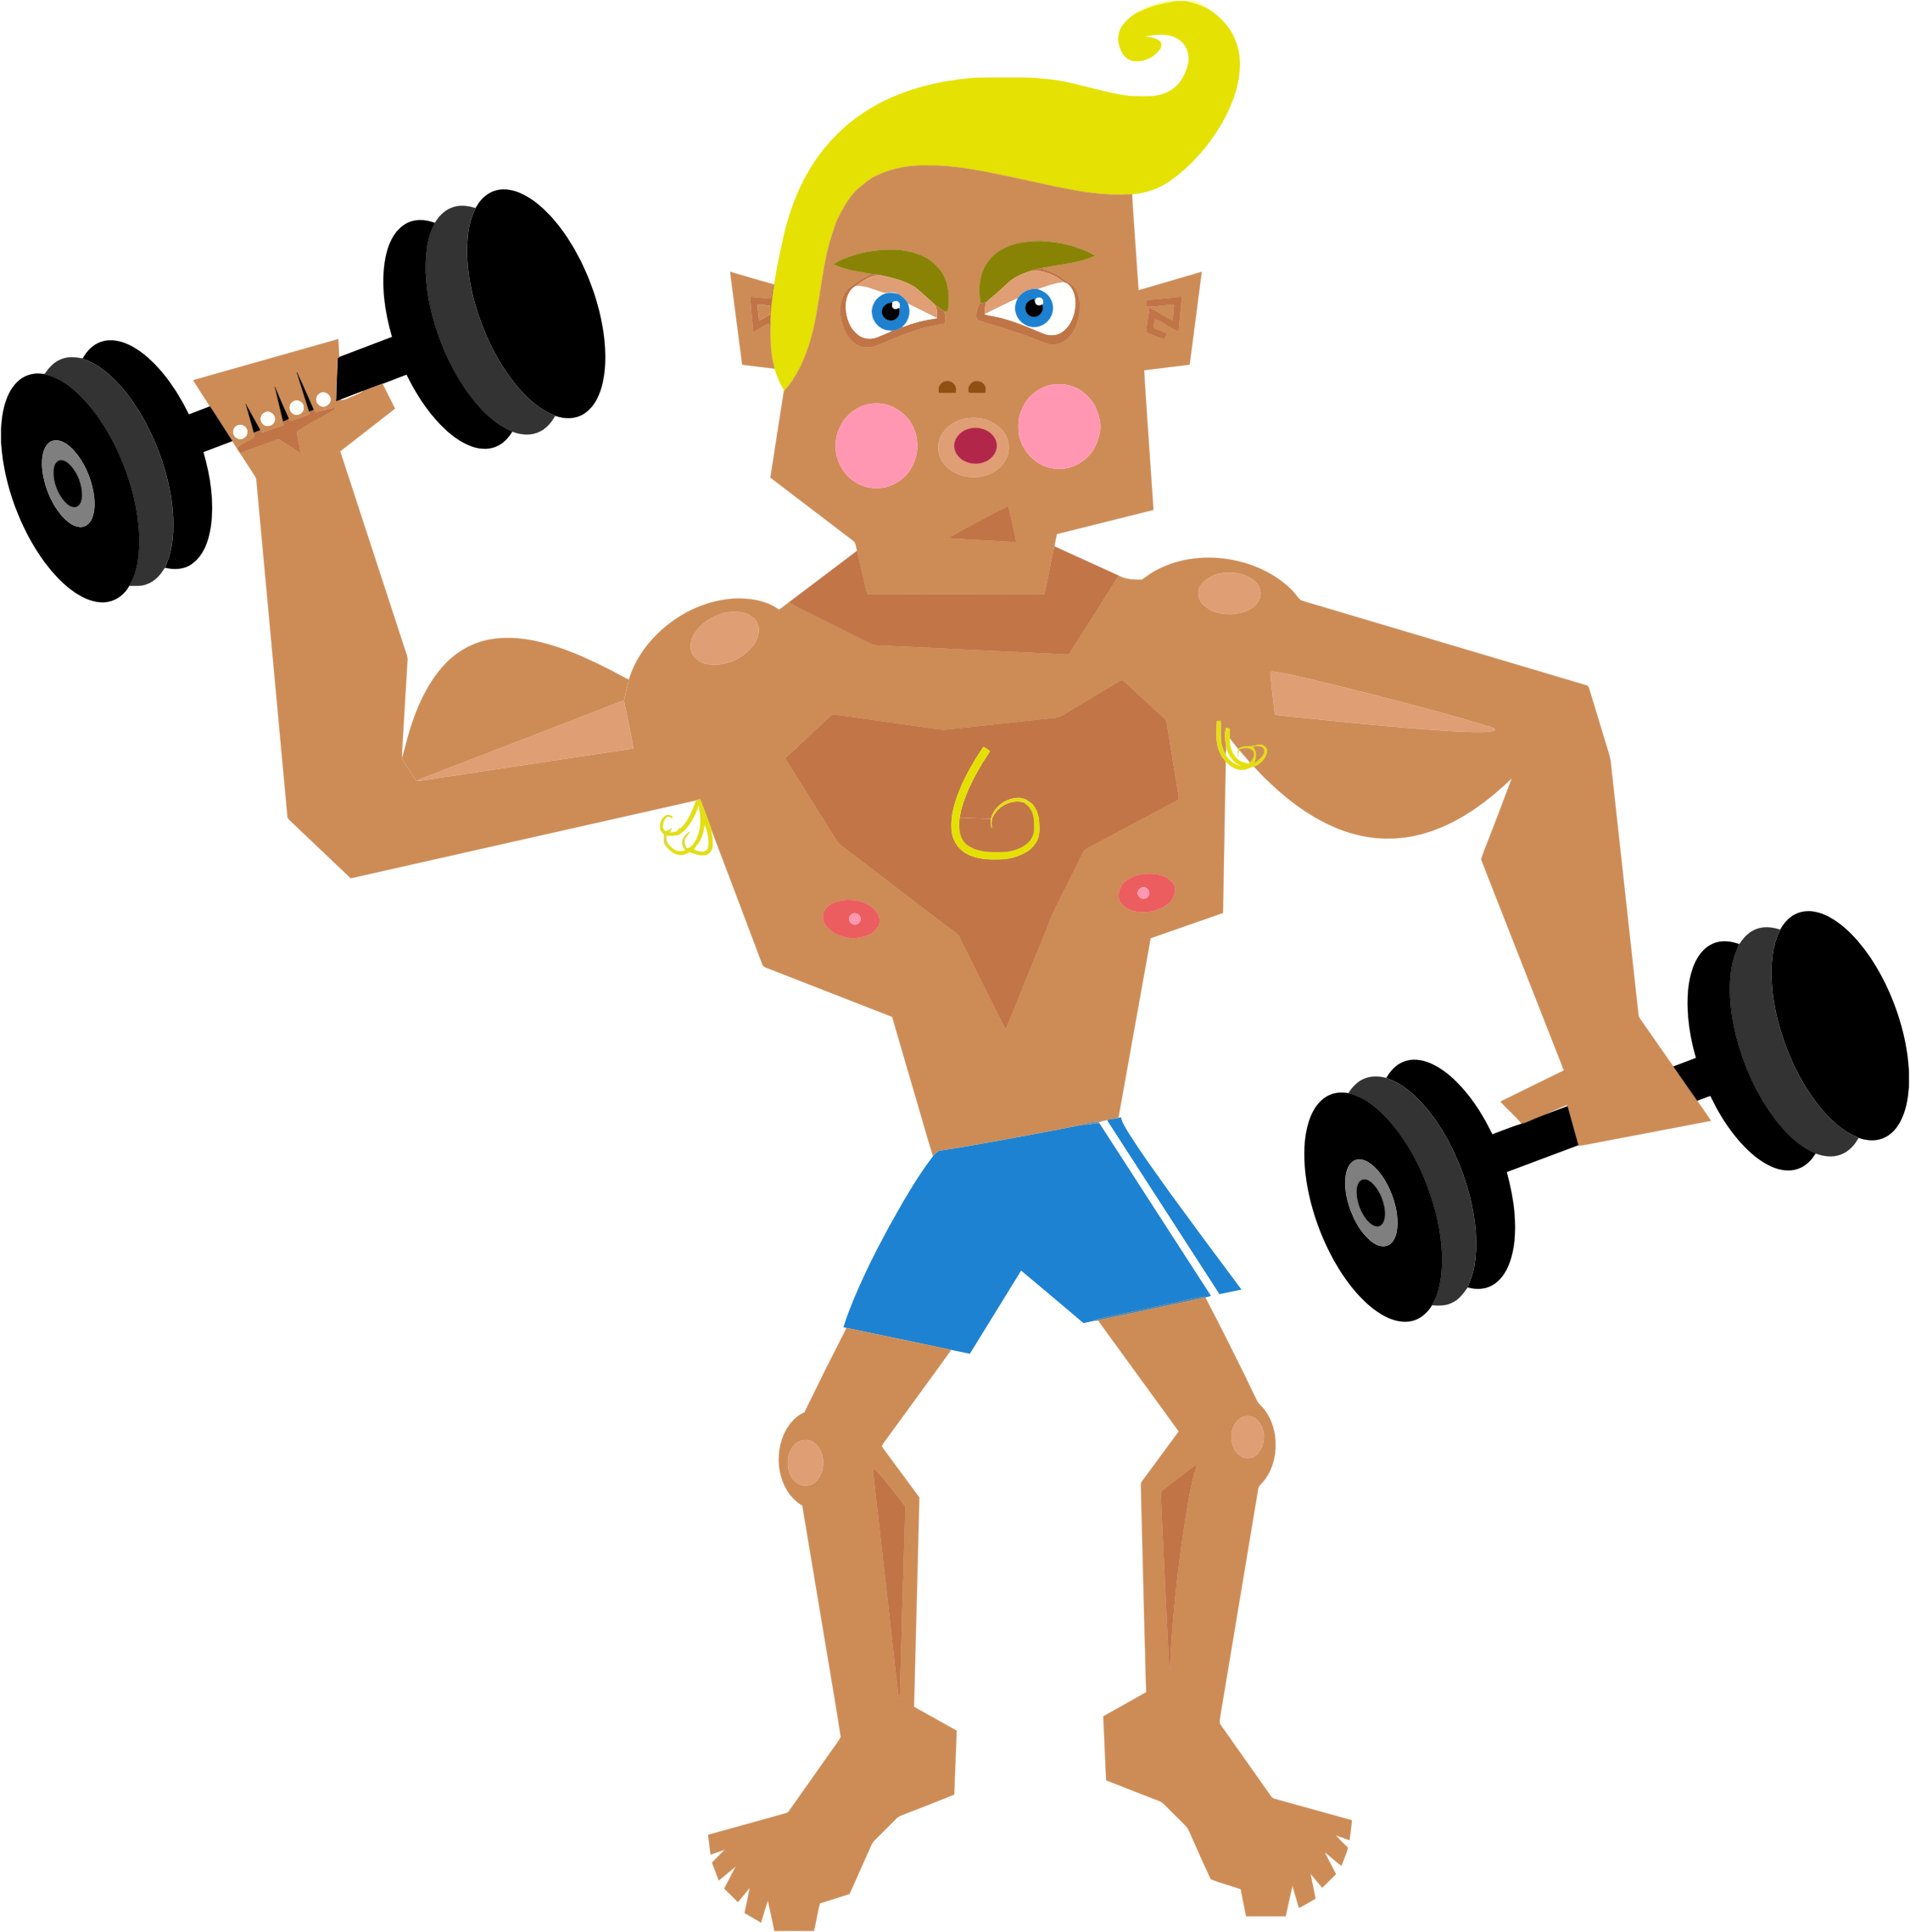 Dumbbell clipart muscular force. Muscle man big image